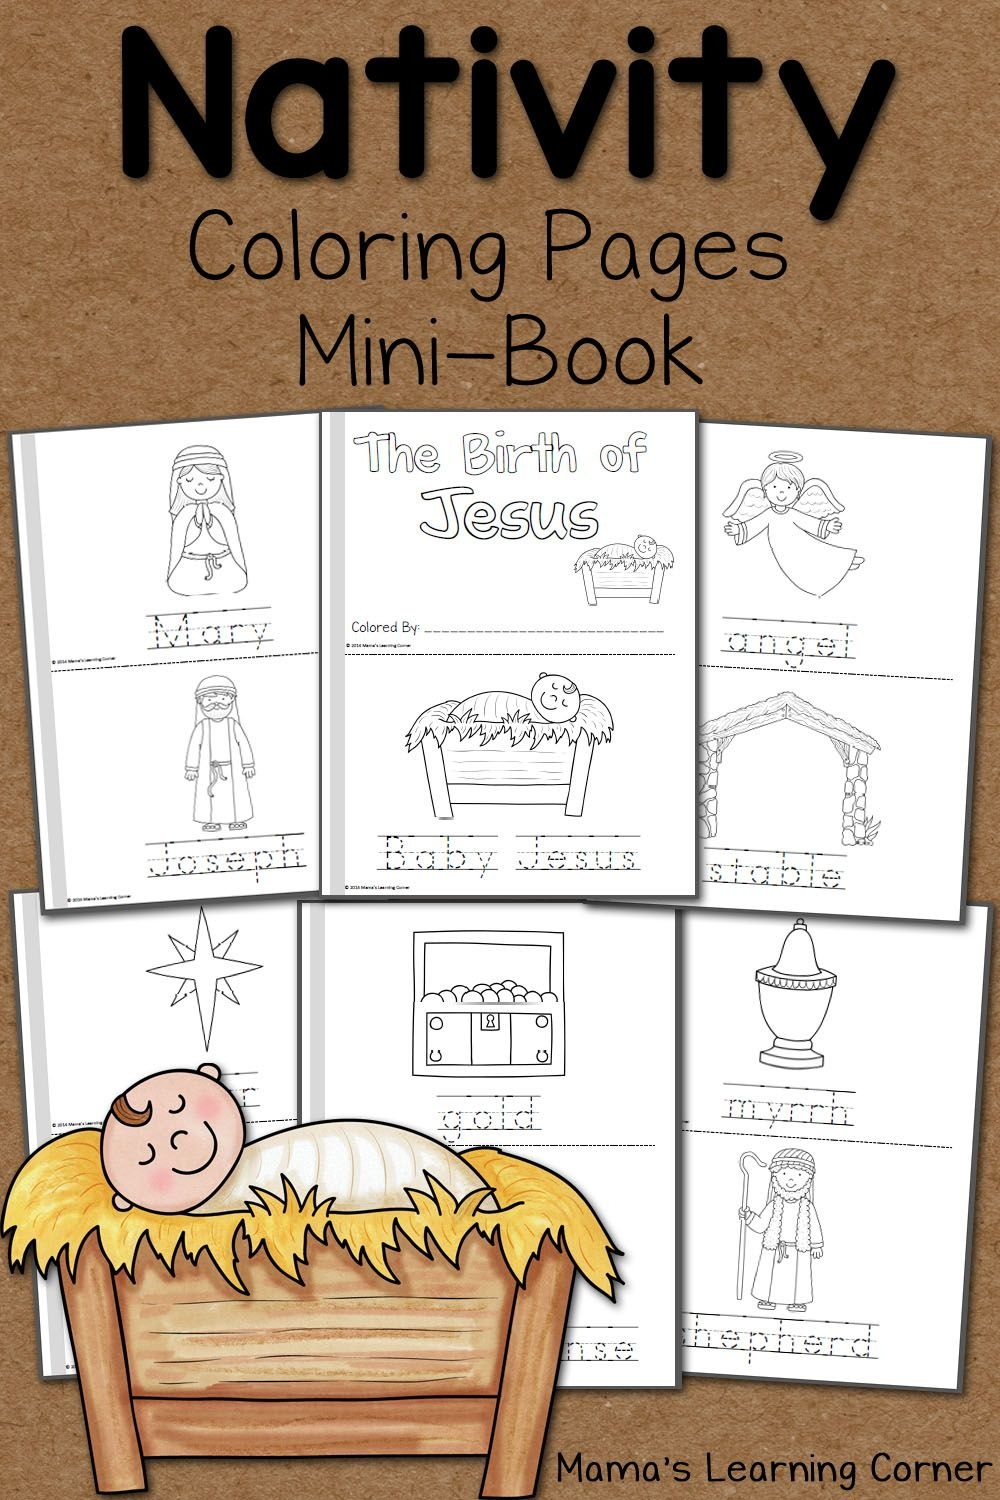 Nativity Coloring Pages   Printables   Nativity Coloring Pages - Free Printable Nativity Story Coloring Pages